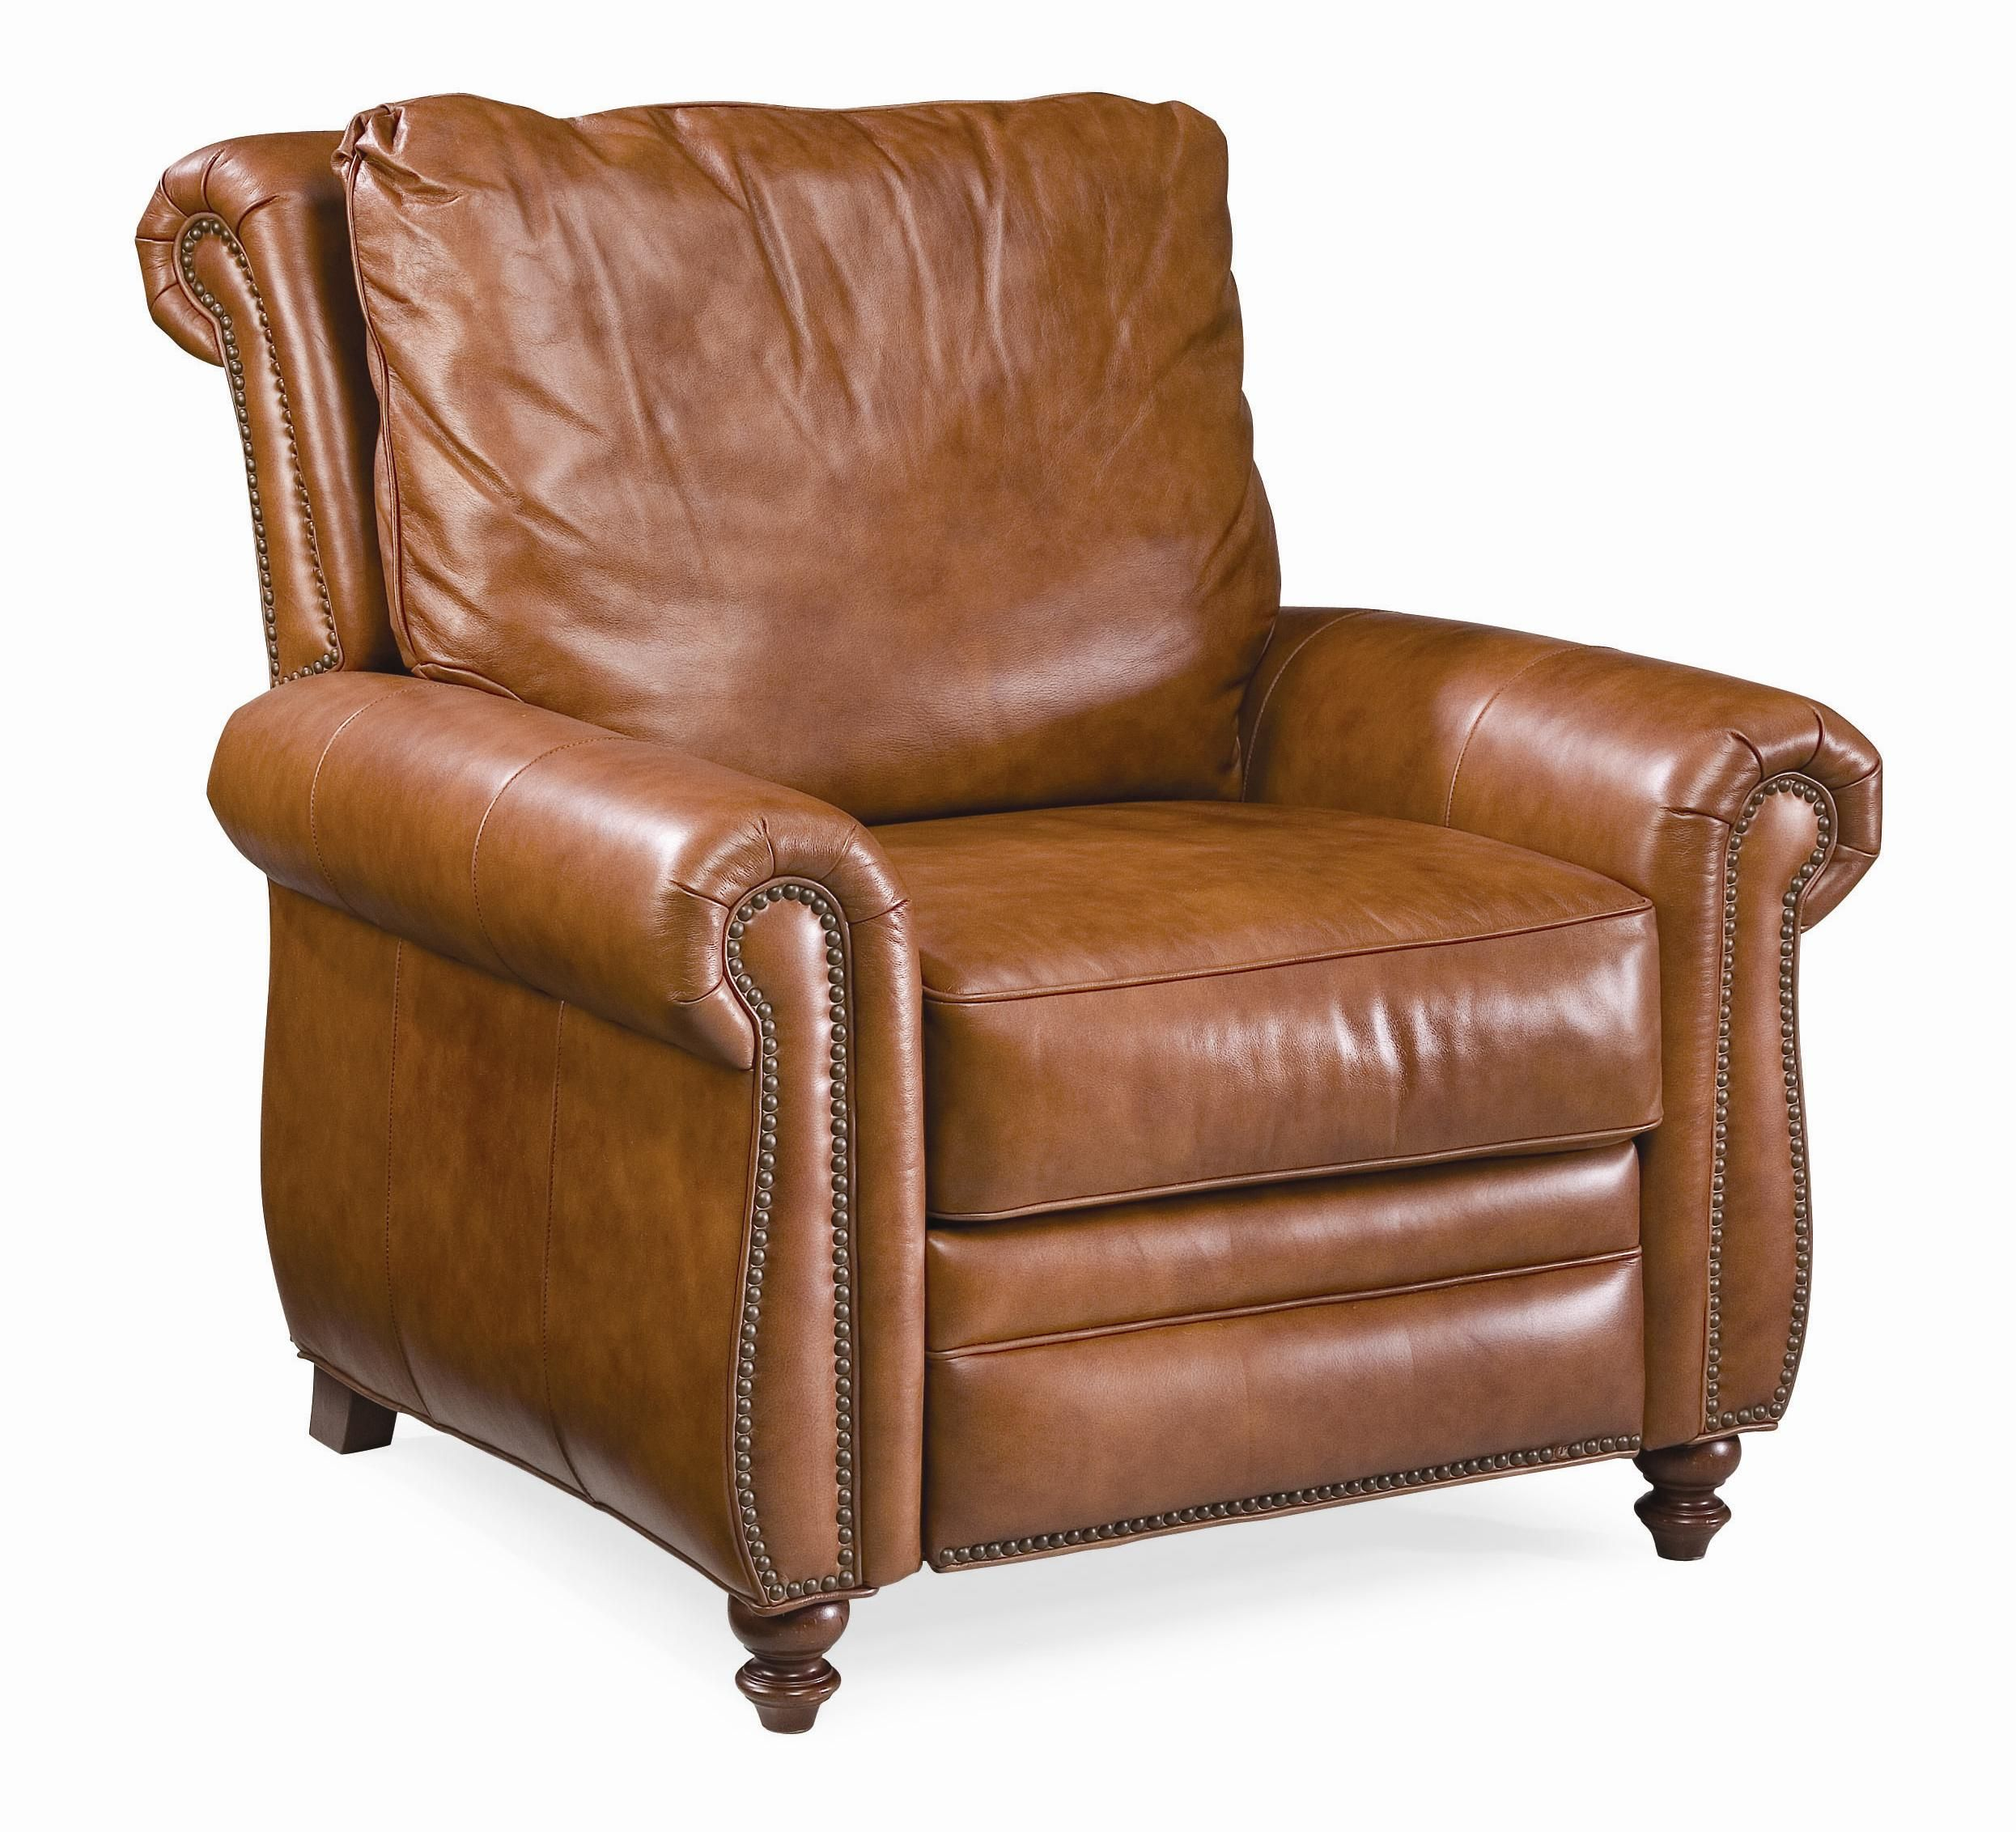 XS Leather Choices   Pickering Leather Choices Recliner By Thomasville®